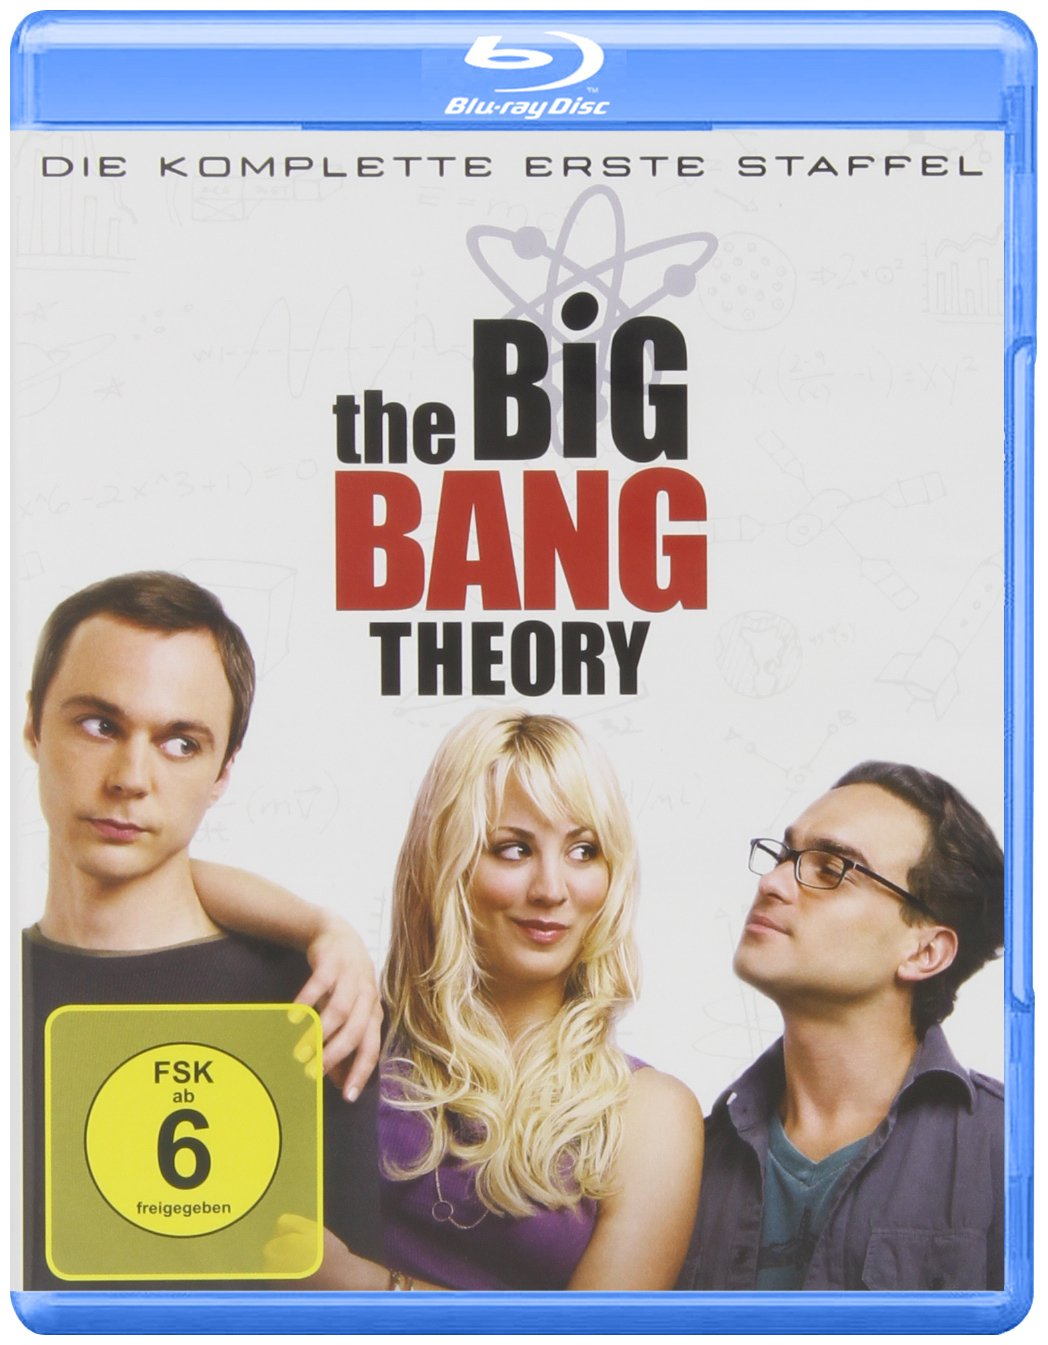 Blu-ray The Big Bang Theory - Die komplette erste Staffel bei Amazon bestellen